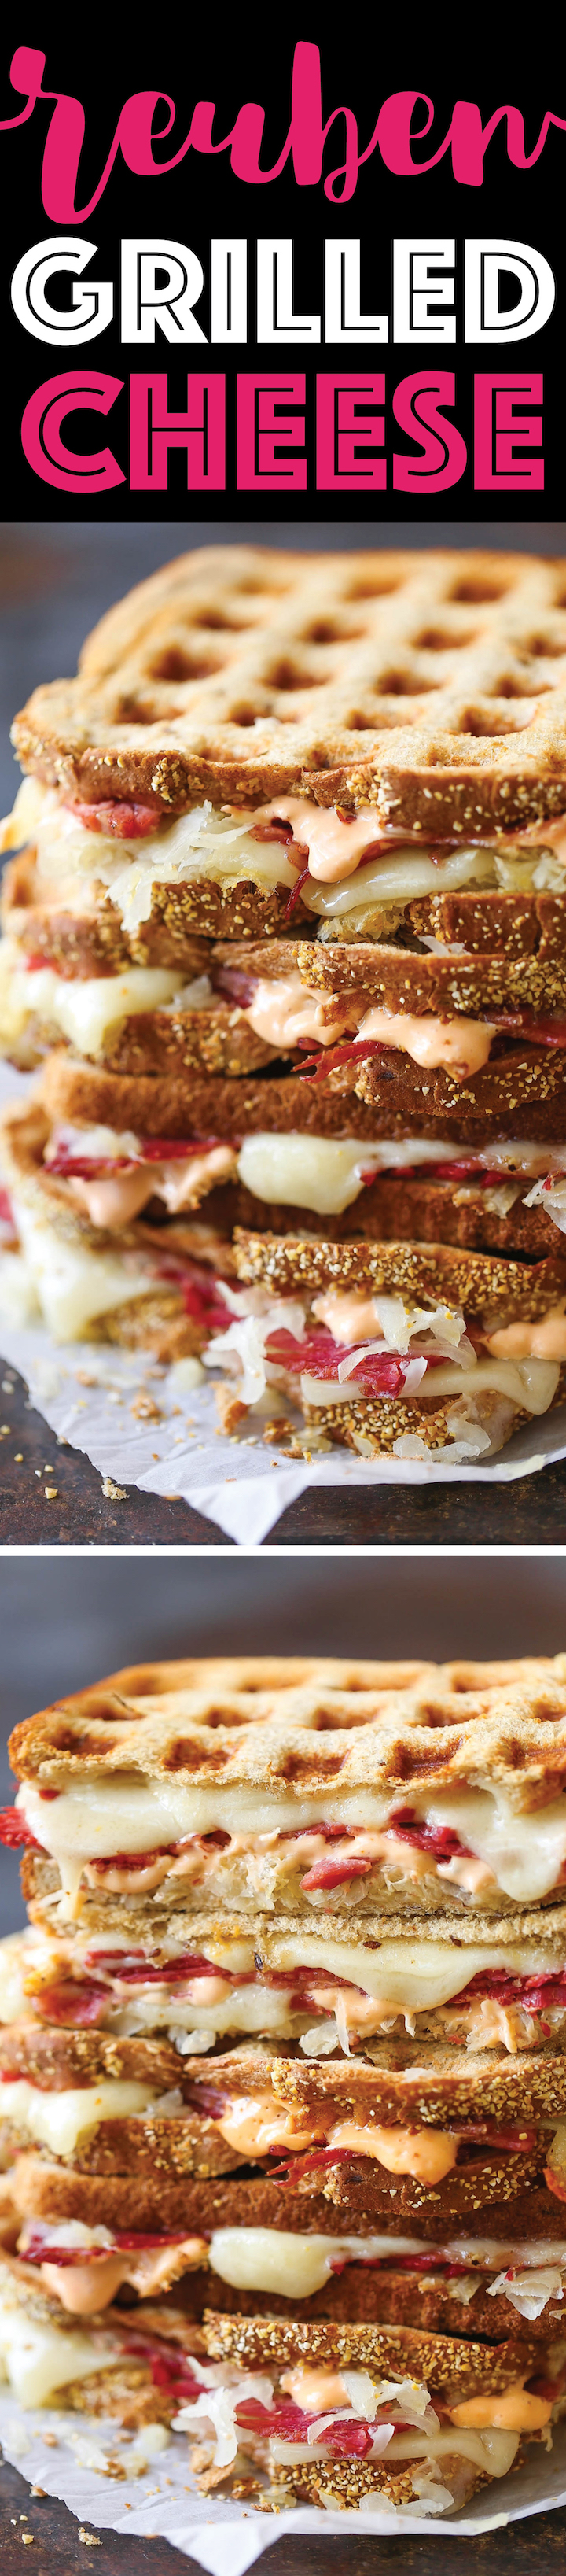 Reuben Grilled Cheese - A classic American sandwich! Corned beef, melted Swiss, sauerkraut, and Thousand Island dressing. So cheesy and just so darn easy!